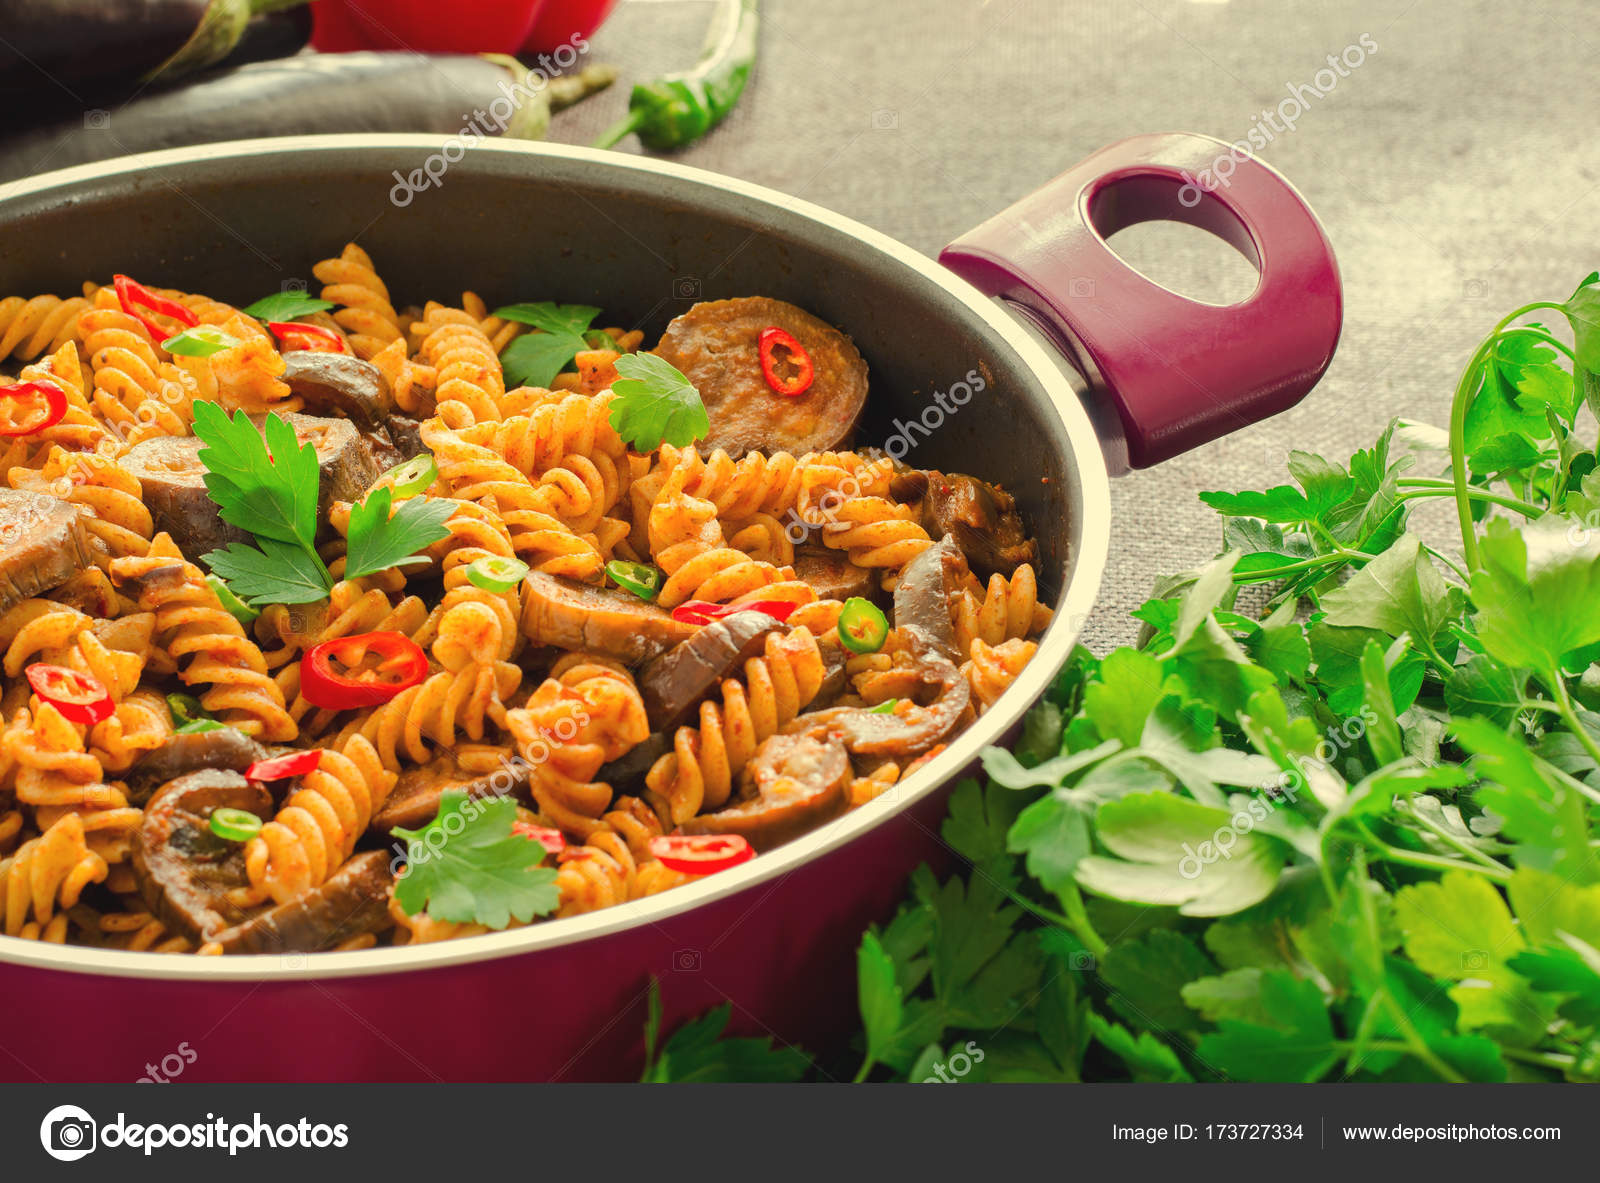 Exceptional Mediterranean Eggplant Pasta In Pot With Tomatoes, Red Pepper And Parsley  On Grey Background.